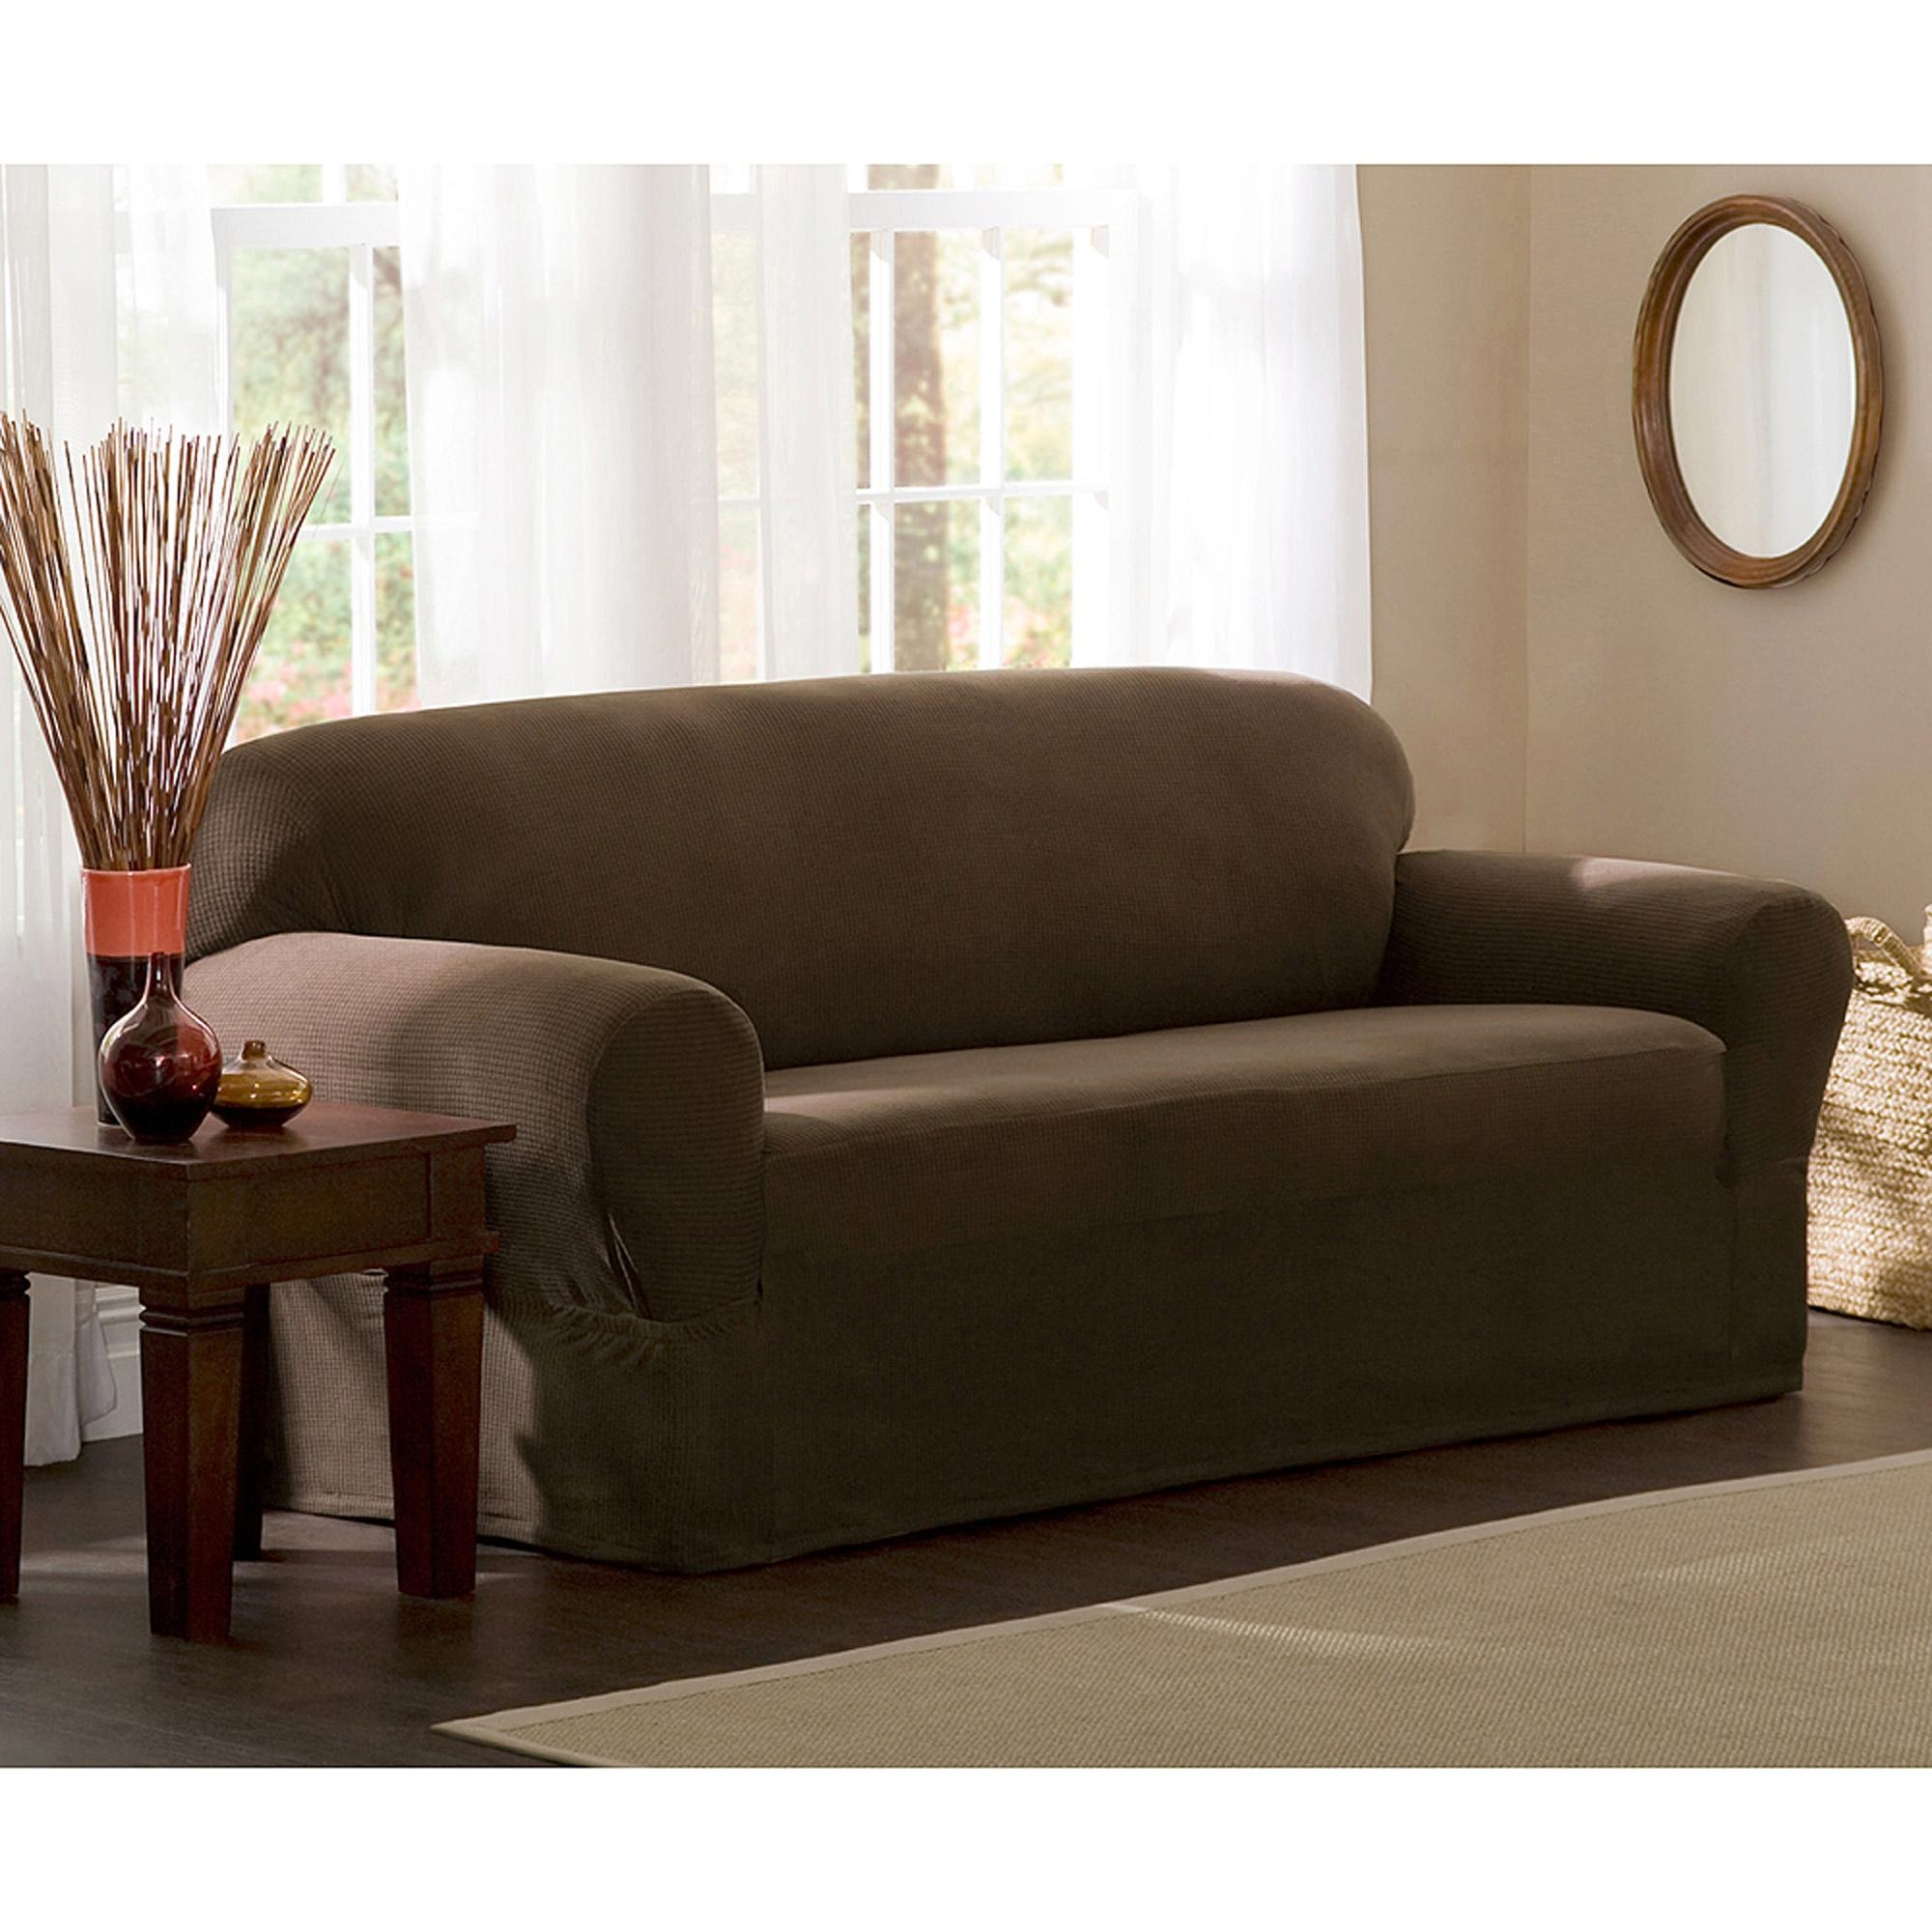 Mainstays 1 Piece Stretch Fabric Sofa Slipcover – Walmart For Wallmart Sofa (View 7 of 20)